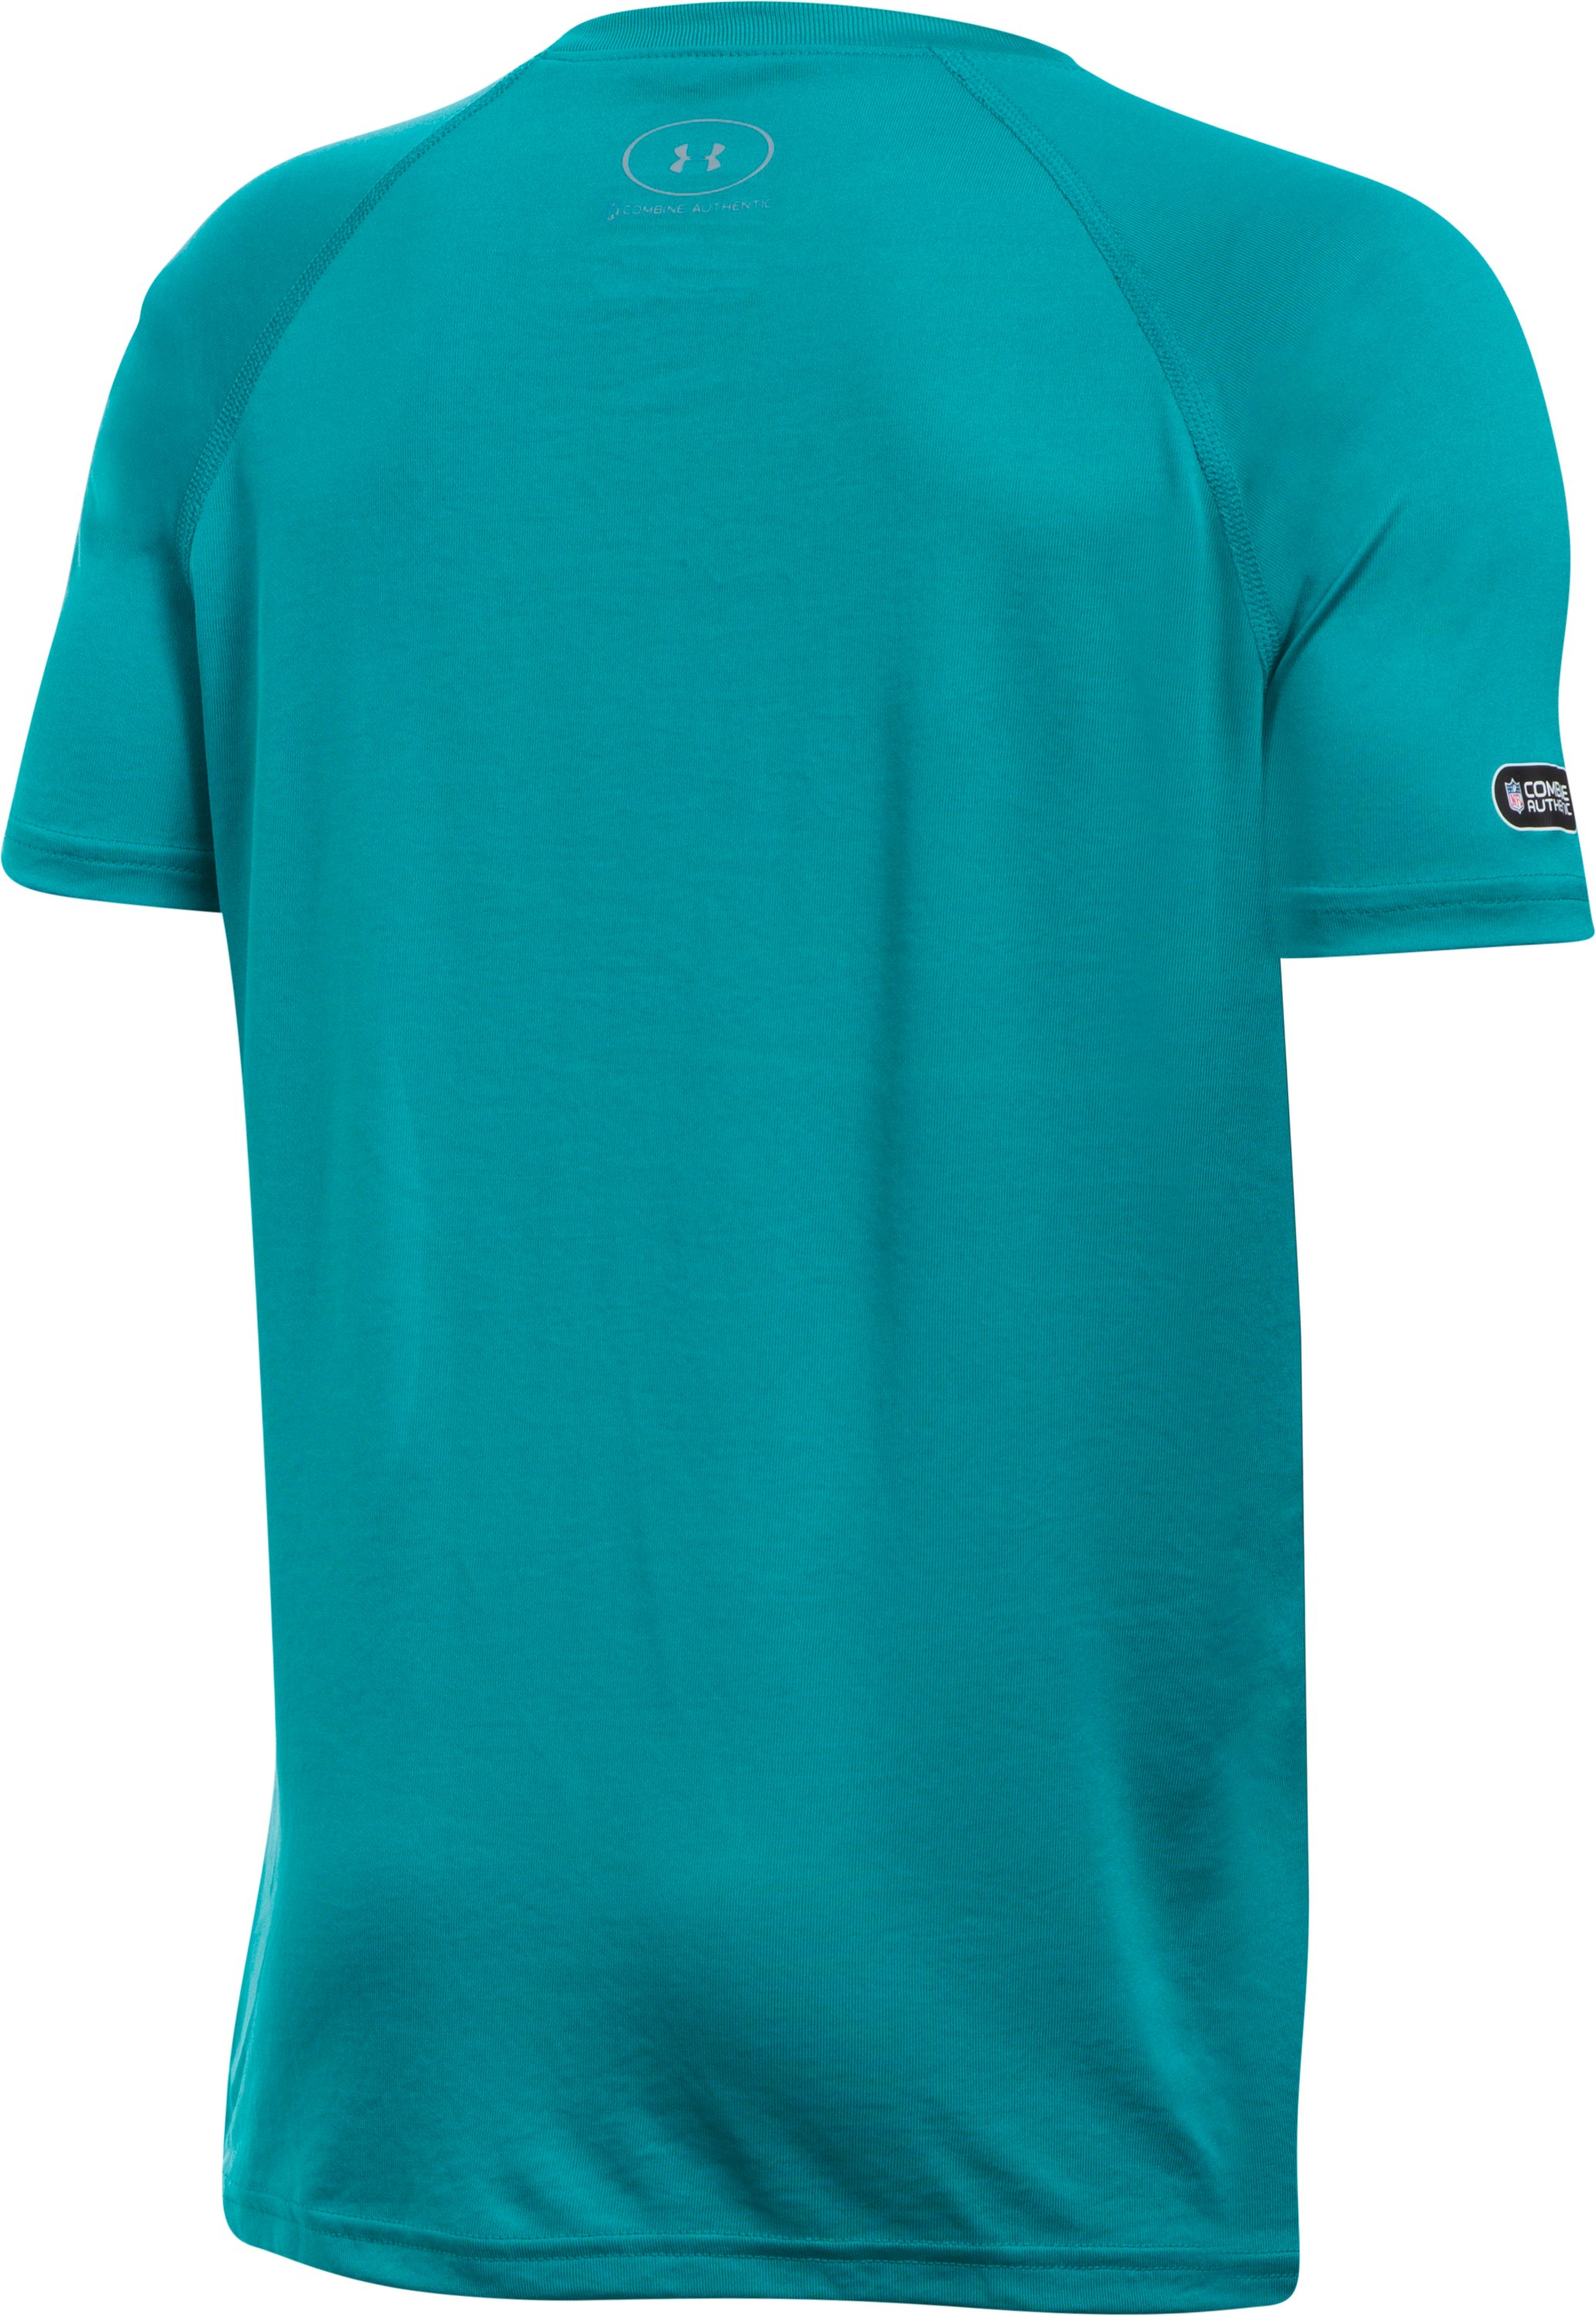 Boys' NFL Combine Authentic Lockup T-Shirt, Miami Dolphins,